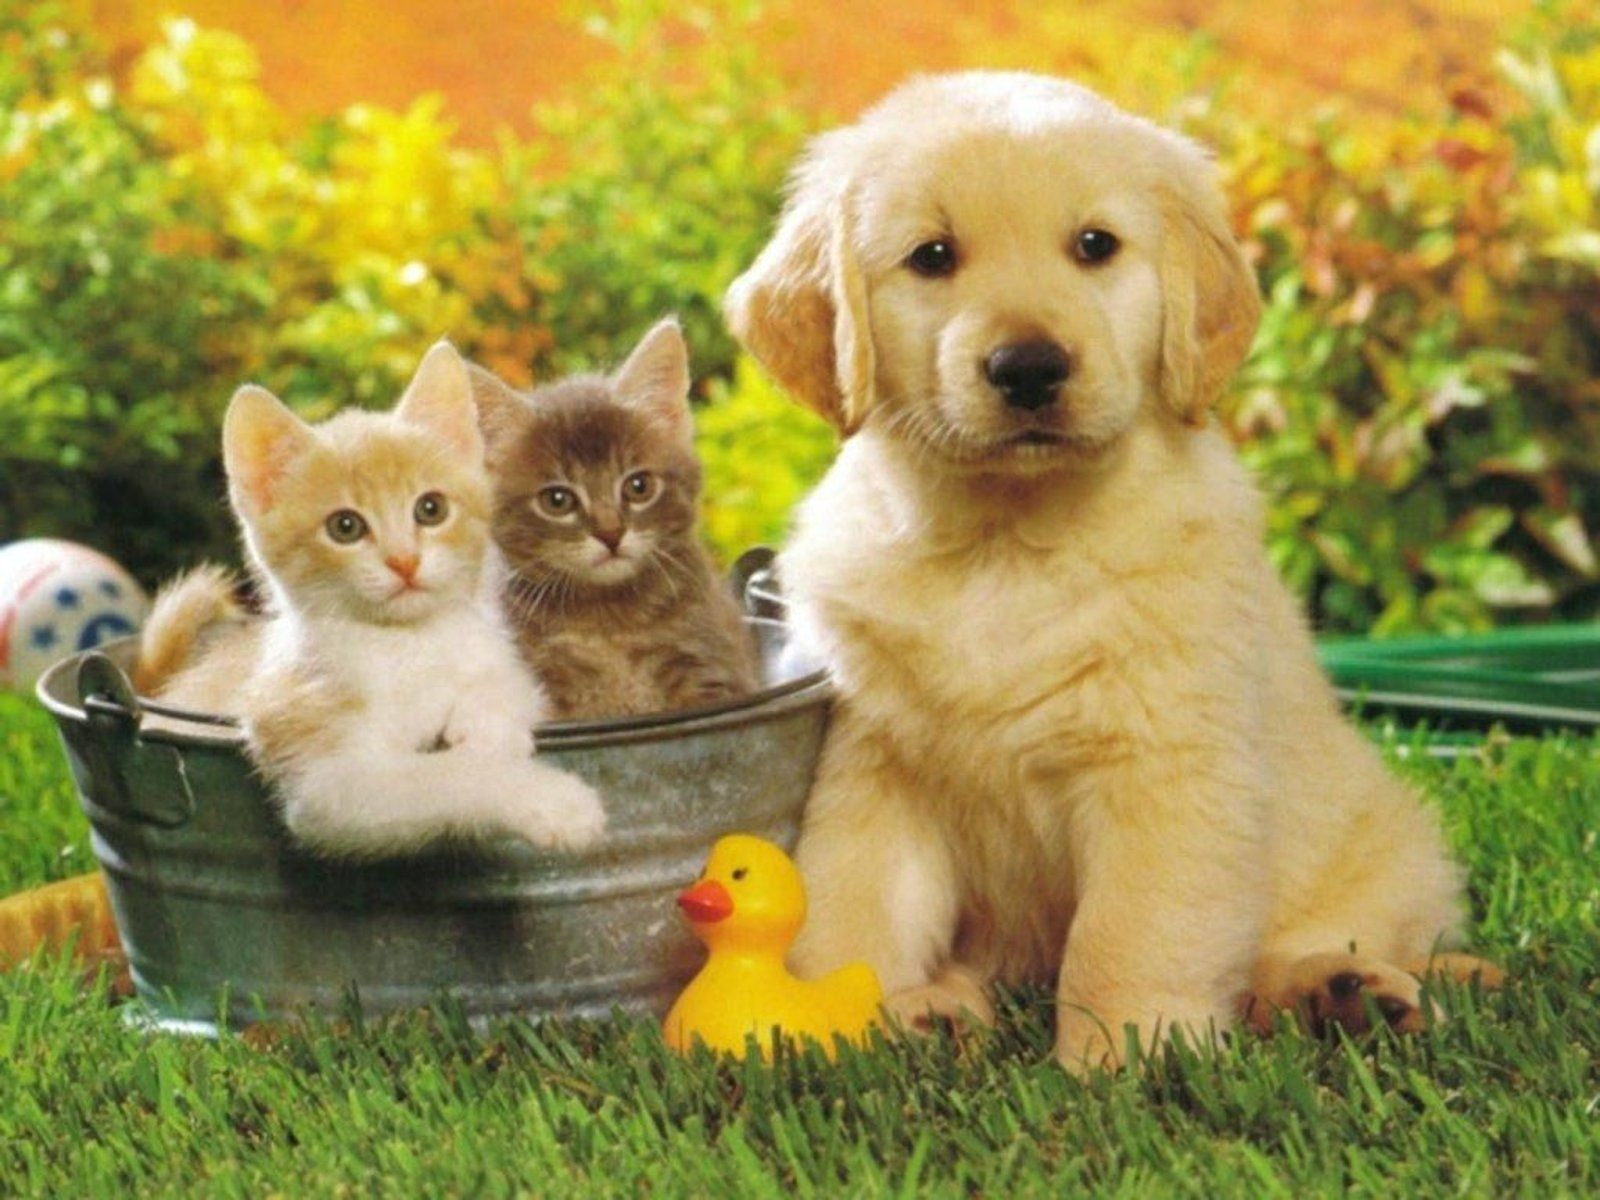 Delightful Picture Of Golden Retriever Puppy And Kittens Together